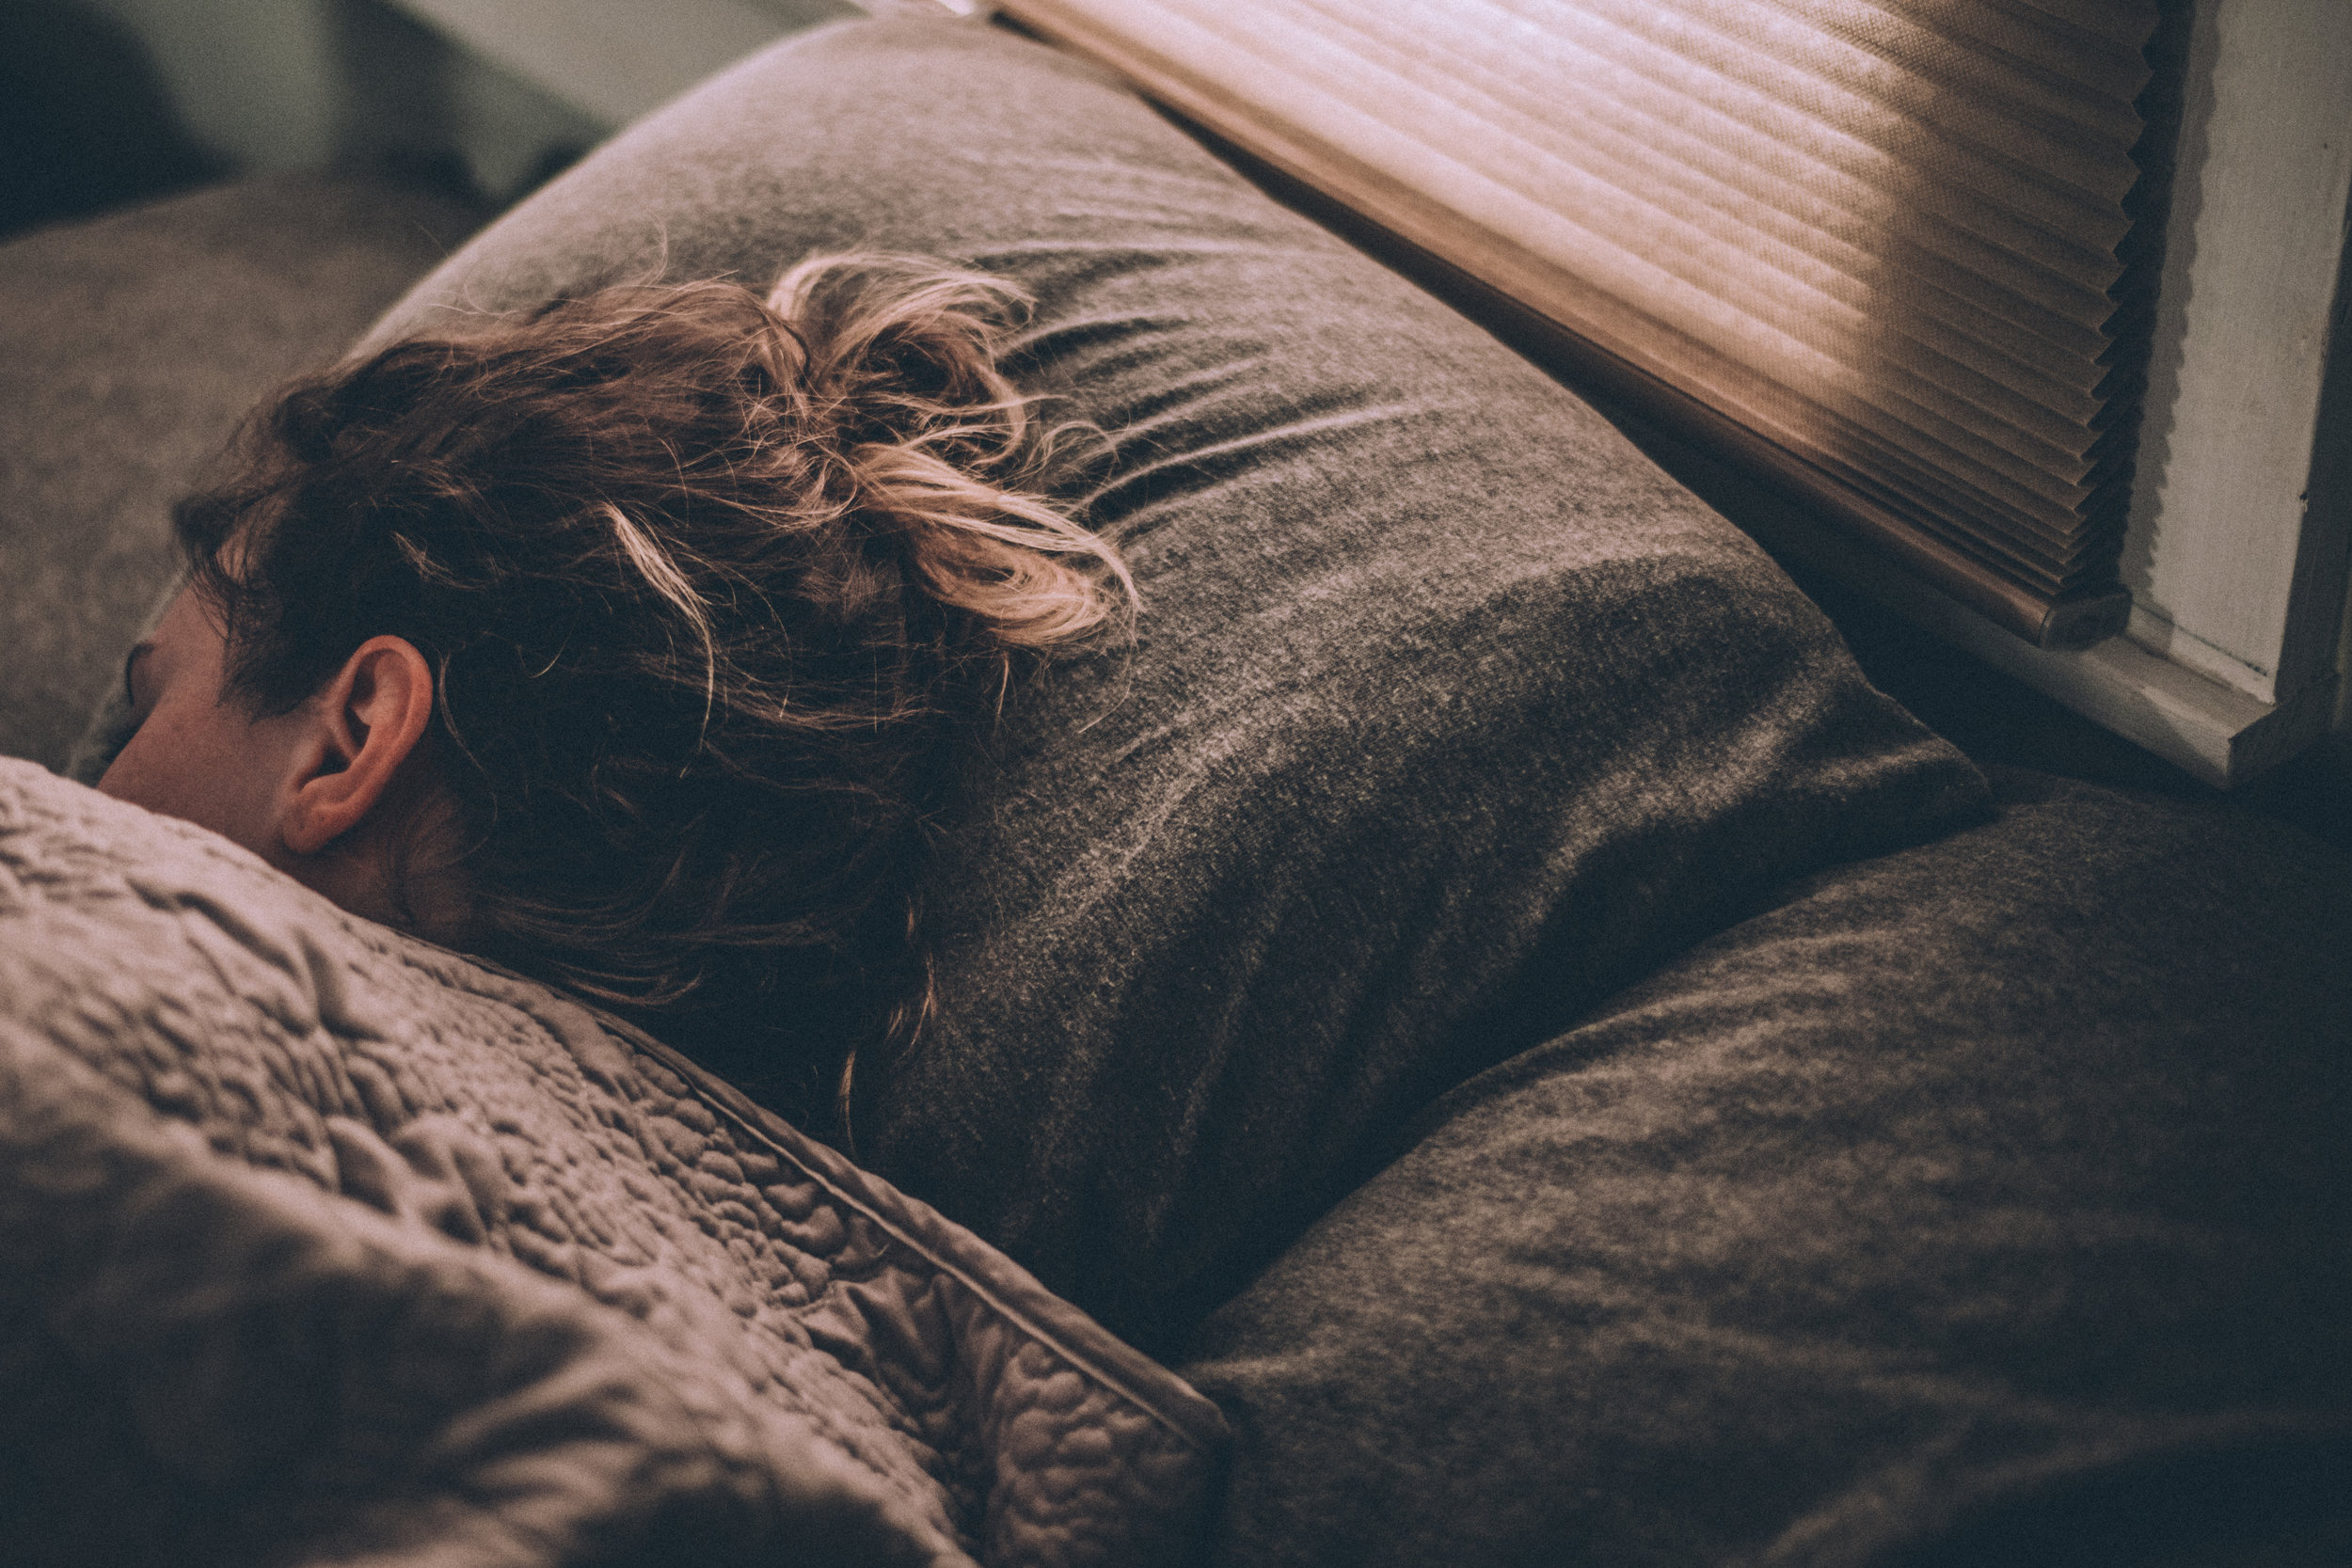 Can't sleep? - Problems falling asleep, awakening after being asleep, and not being able to sleep through the night are all common problems. Insomnia is probably the most common.